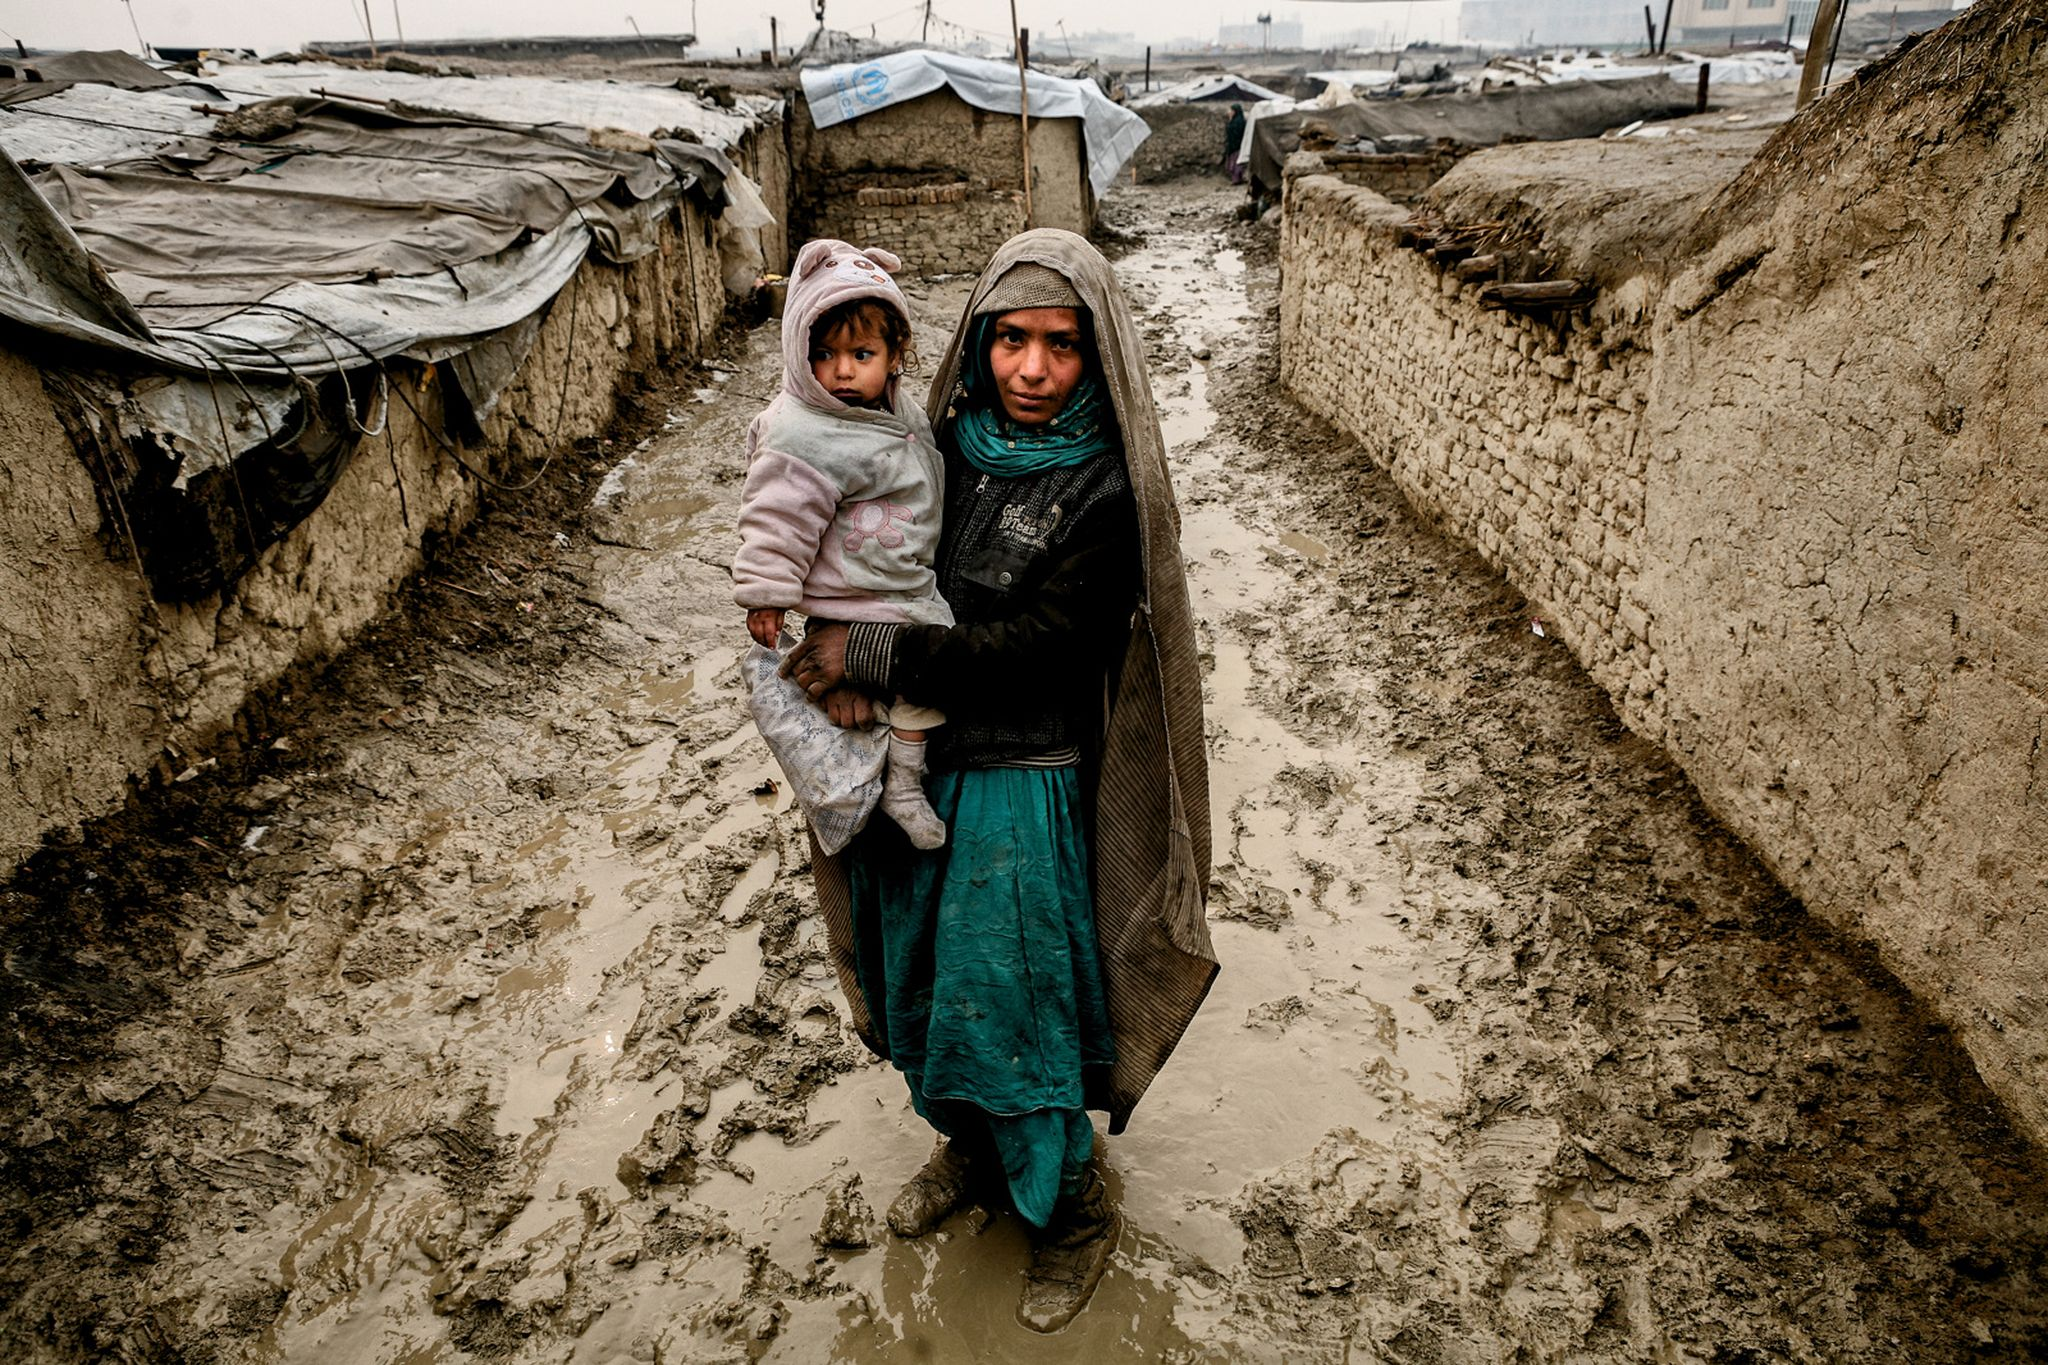 Mother and child refugees